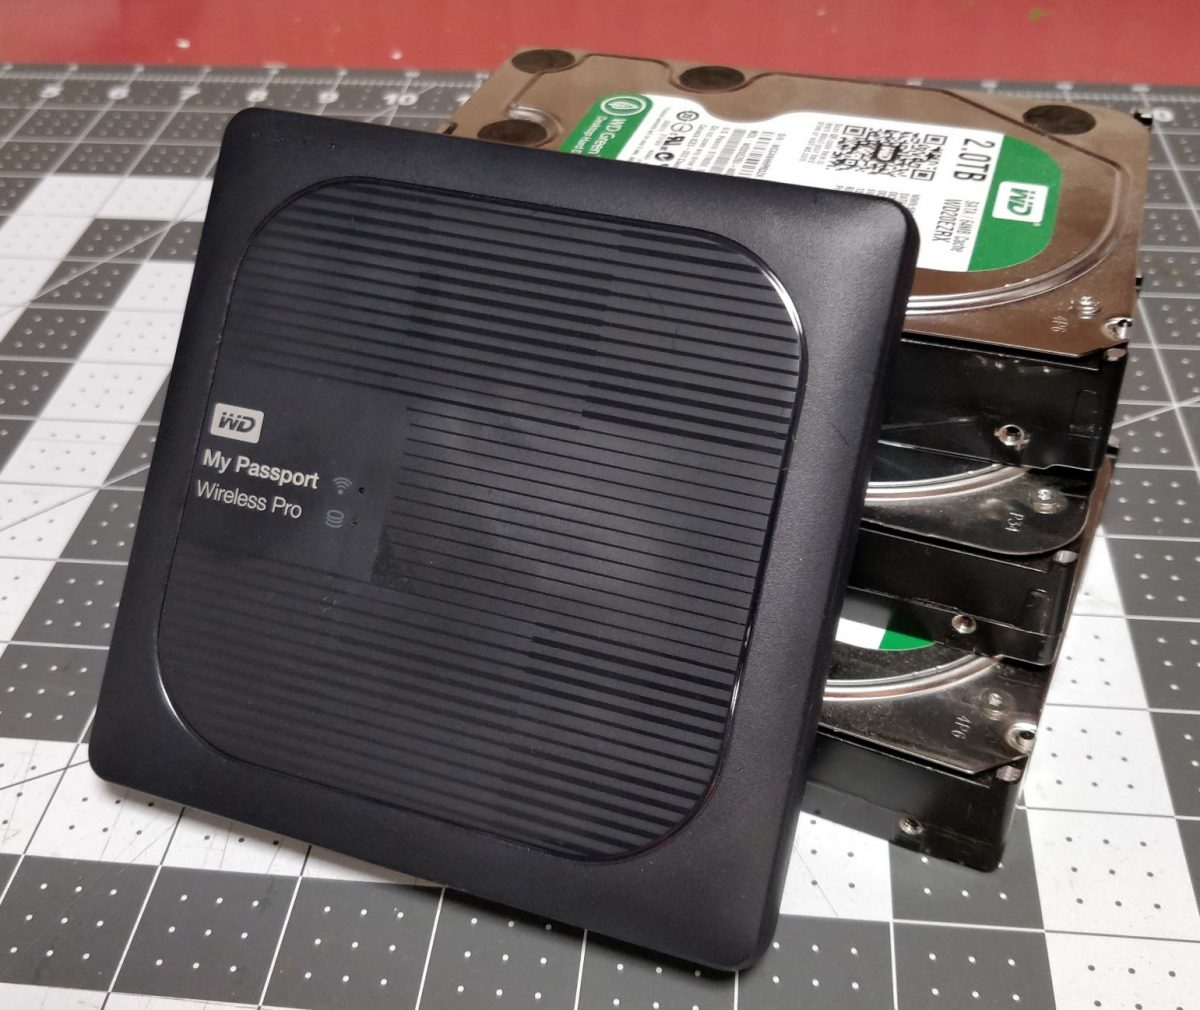 Review of the Western Digital My Passport Wireless Pro